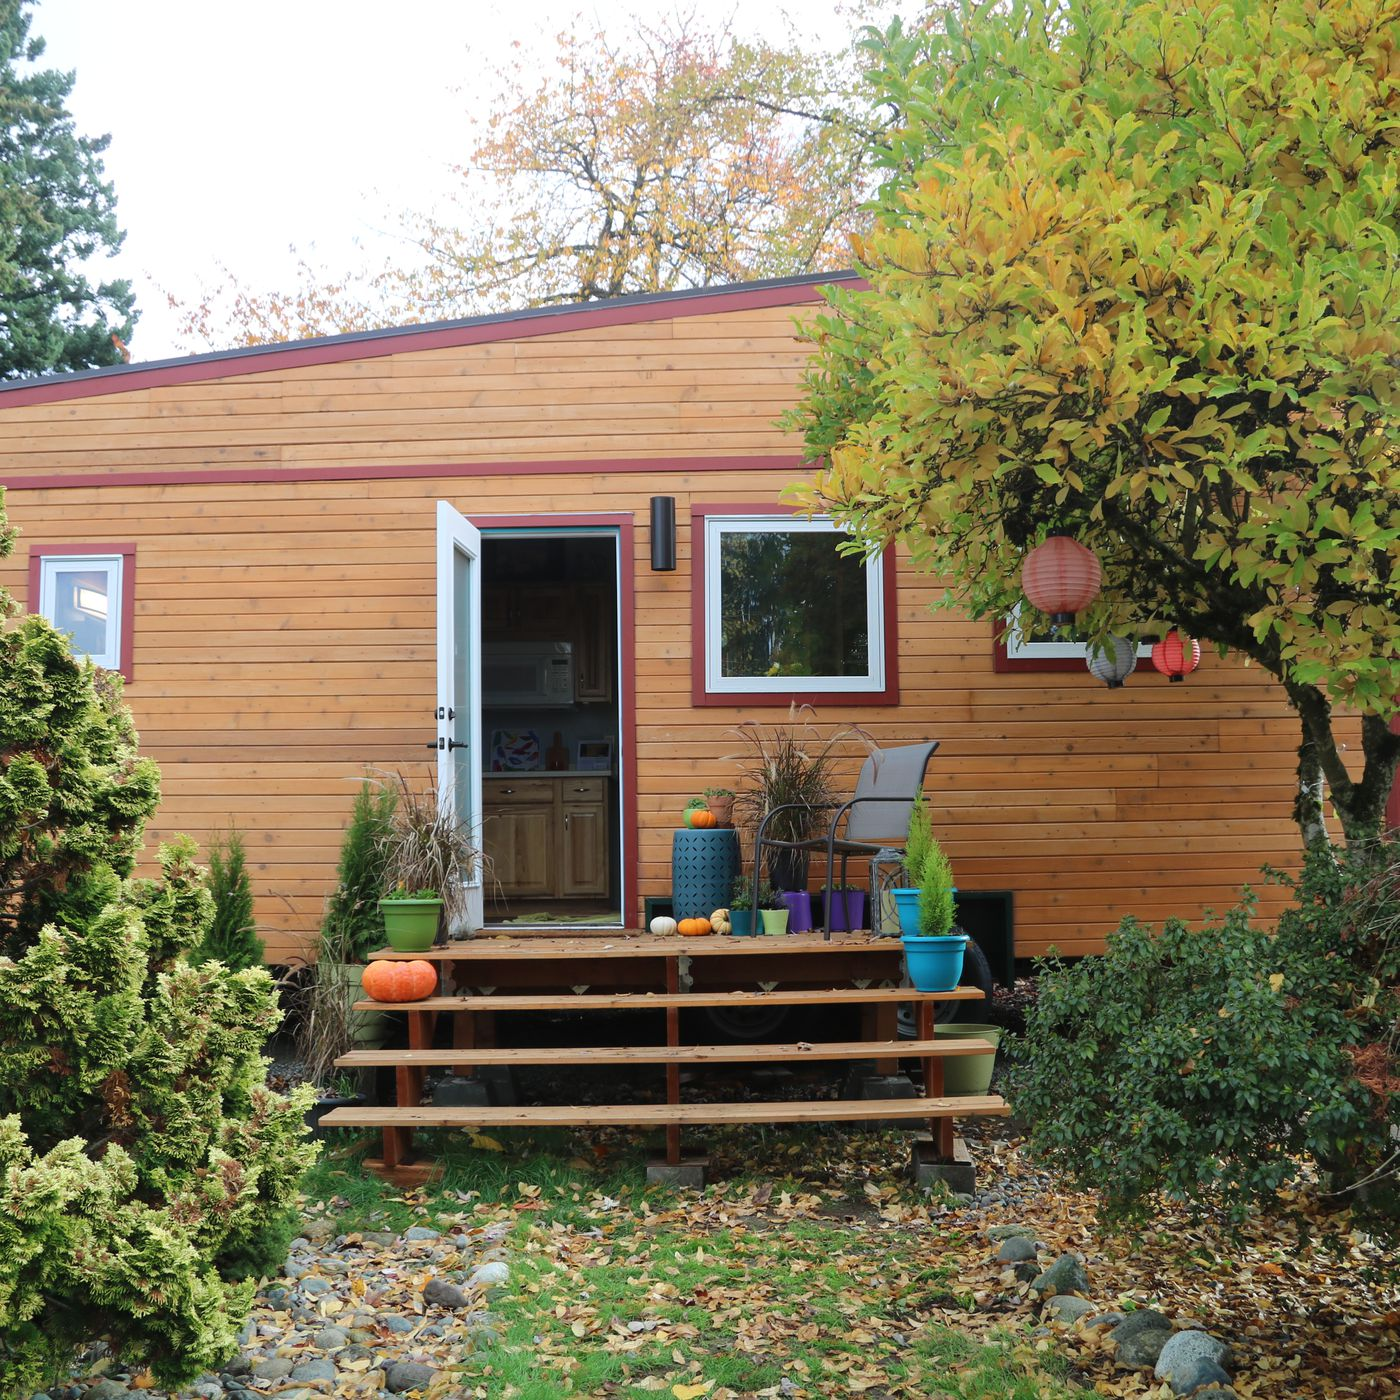 One approach to long-term shelter: Tiny grants for tiny homes